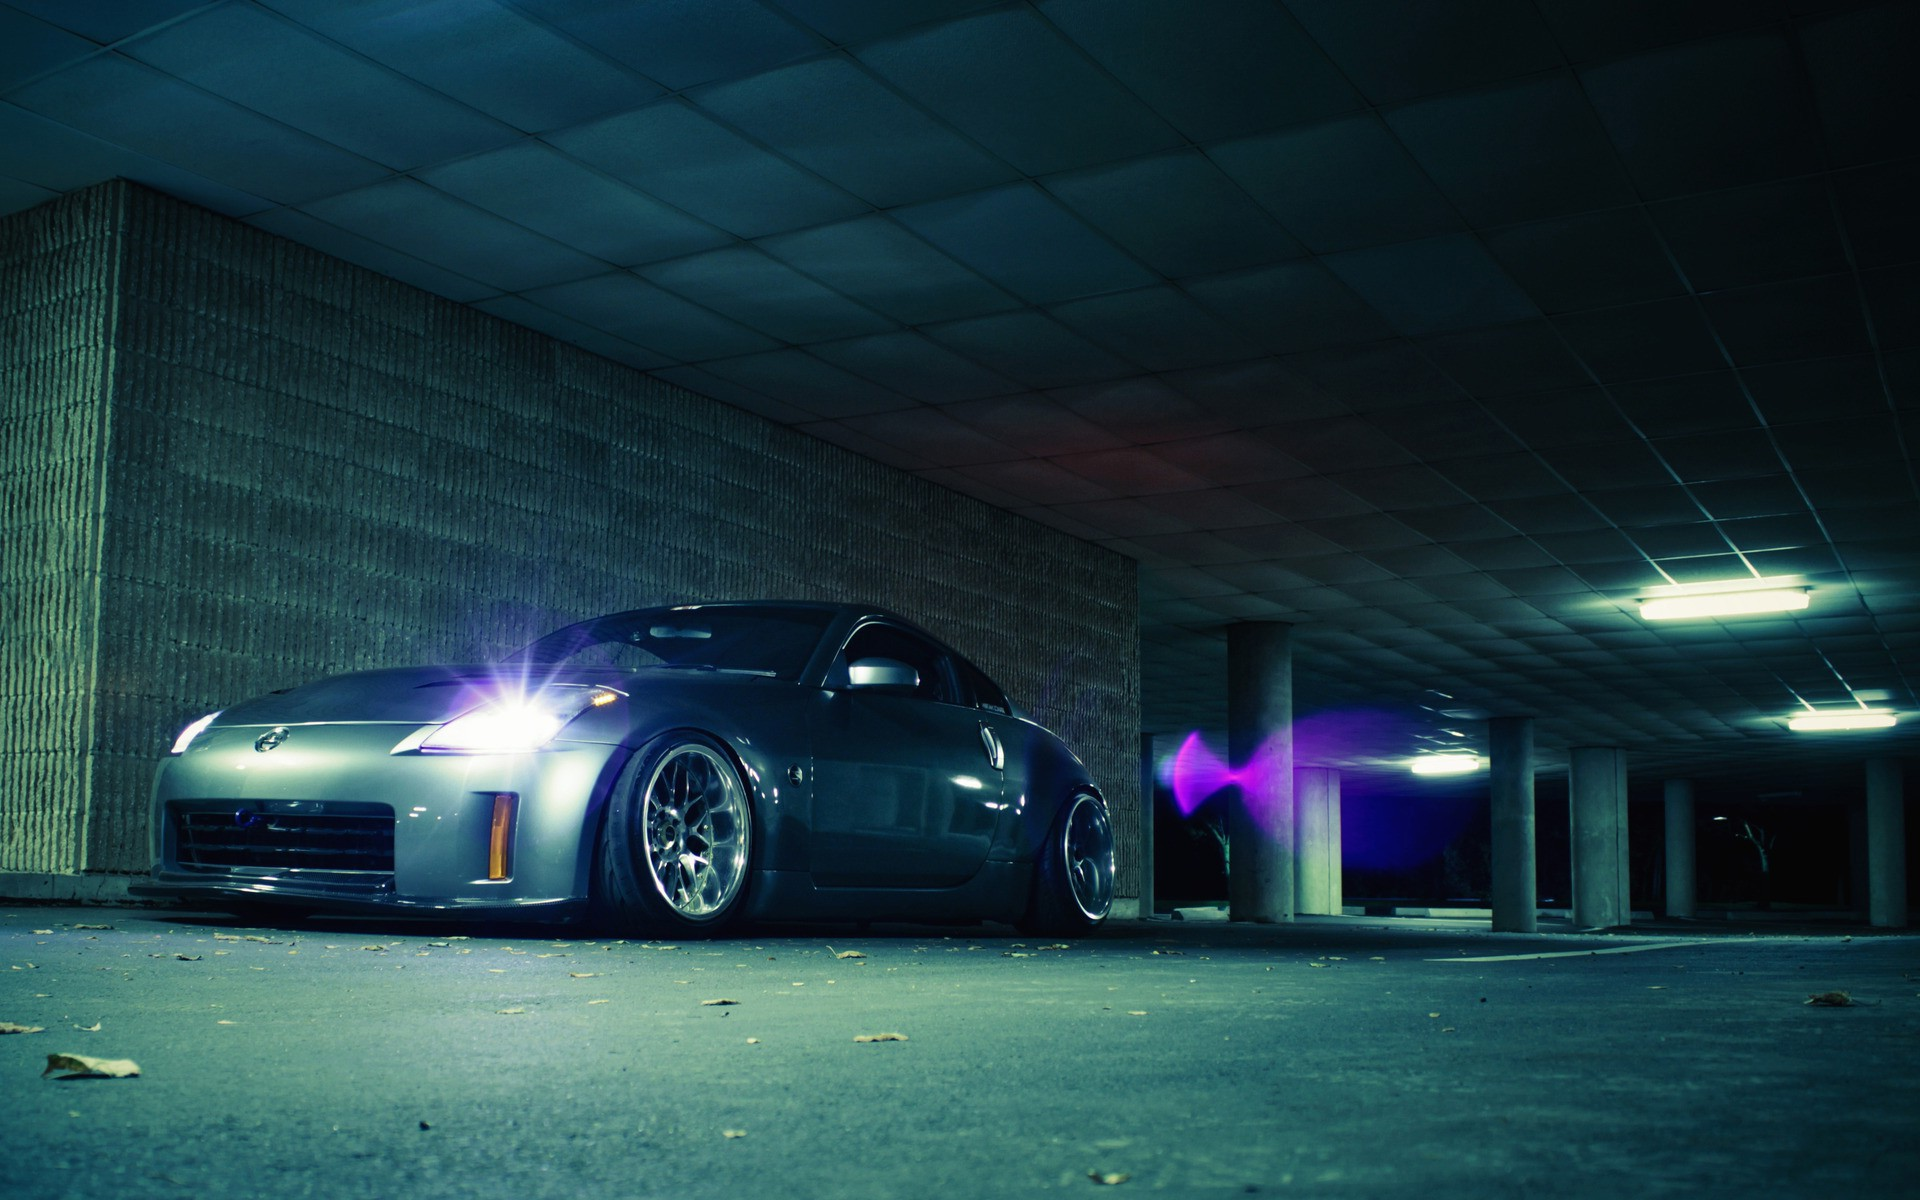 """Download the following Fantastic 350z Wallpaper 47066 by clicking the orange button positioned underneath the """"Download Wallpaper"""" section."""